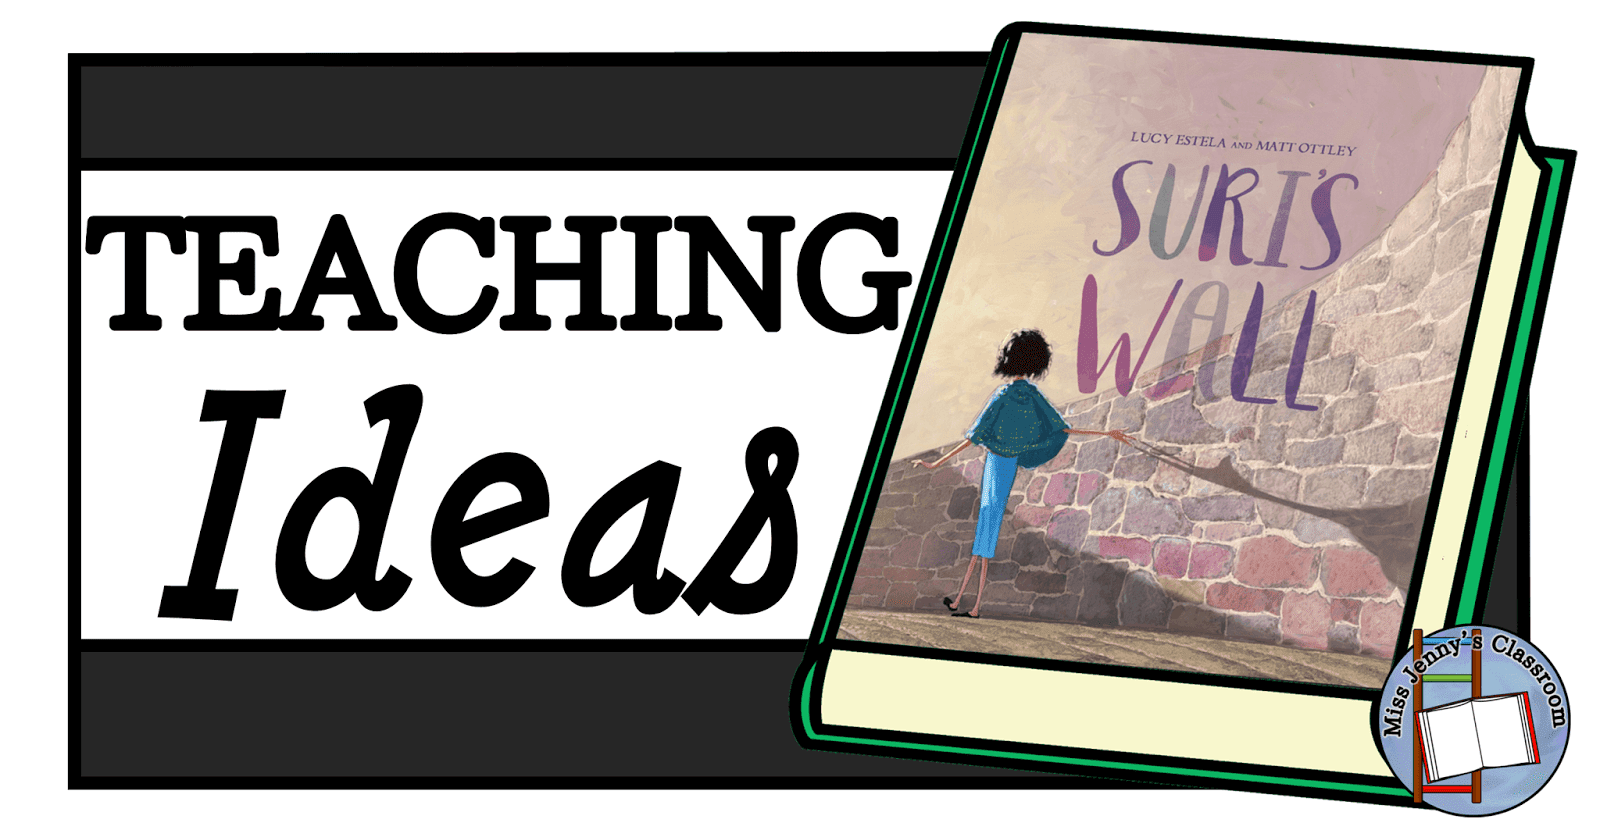 Suri's Wall: Teaching Ideas